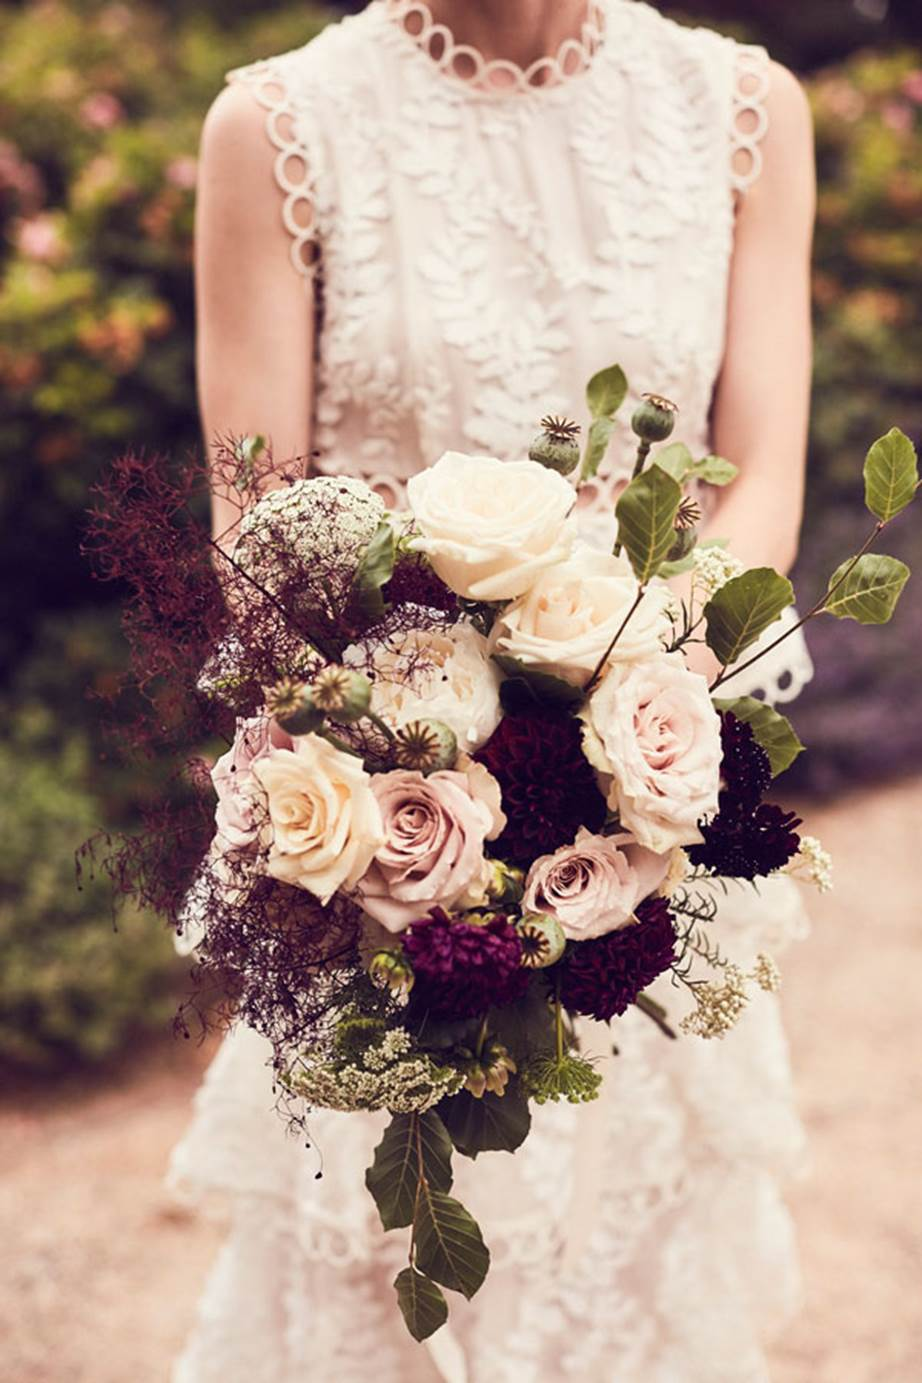 Hopewood House - Weddings  - Harpers Bazaar - Woodland Wedding in the Souther Highlands - Alyssa and Adriano - Floral Bunch.jpg